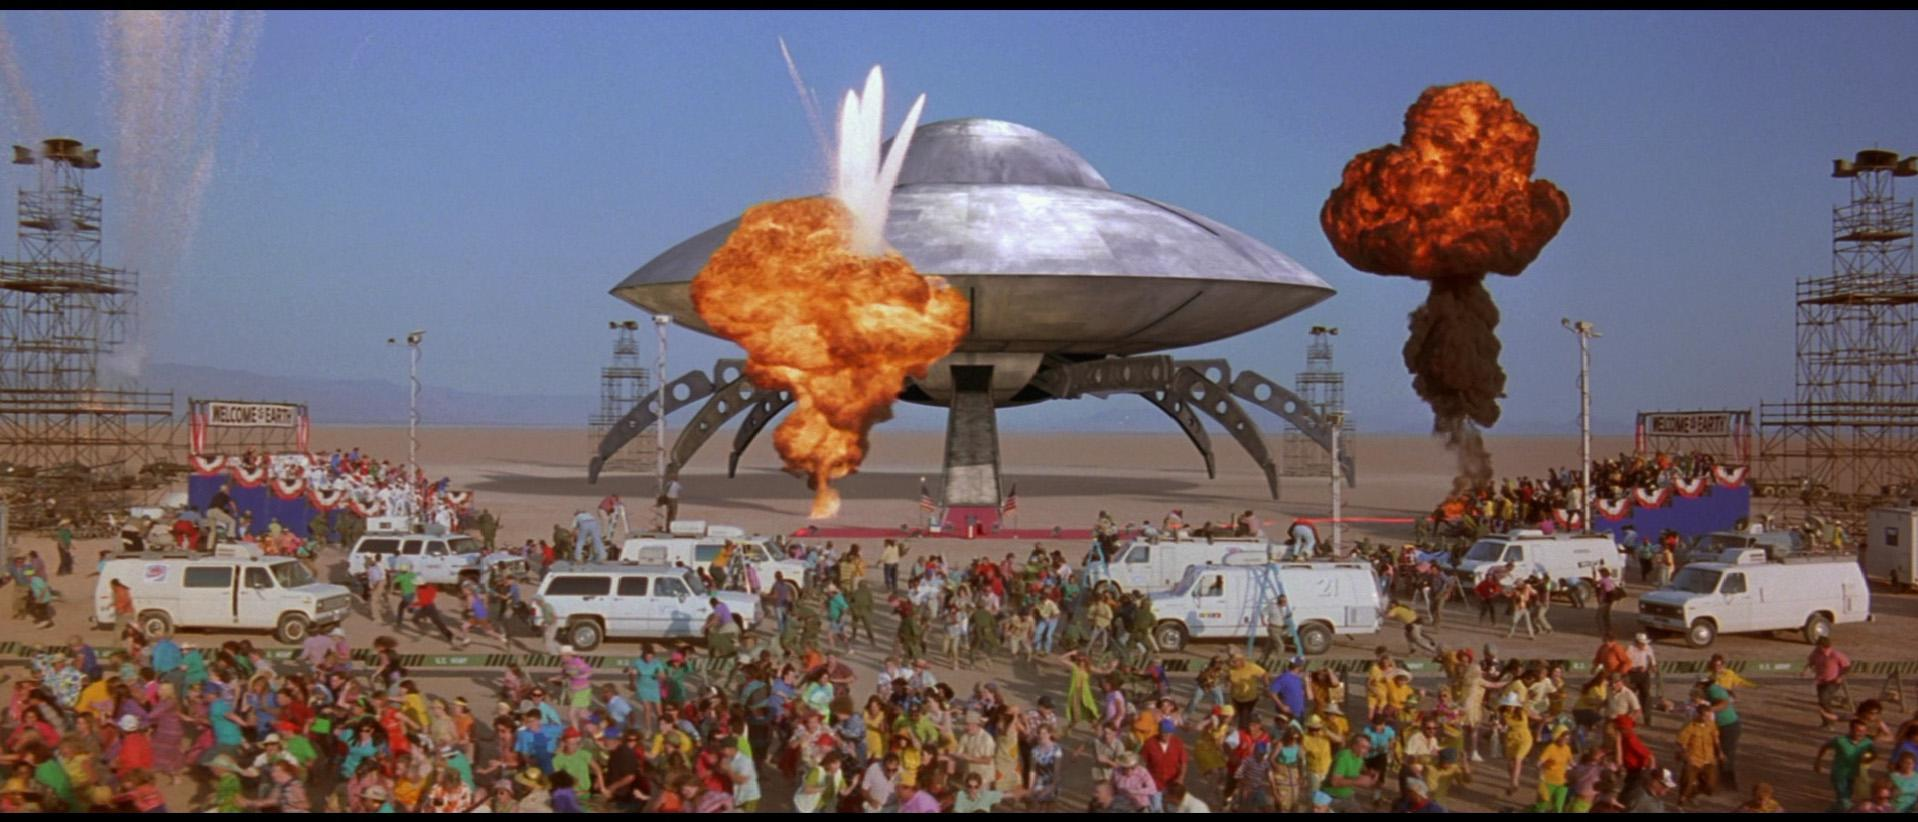 Mars Attacks - film scene - alien arrive with UFO